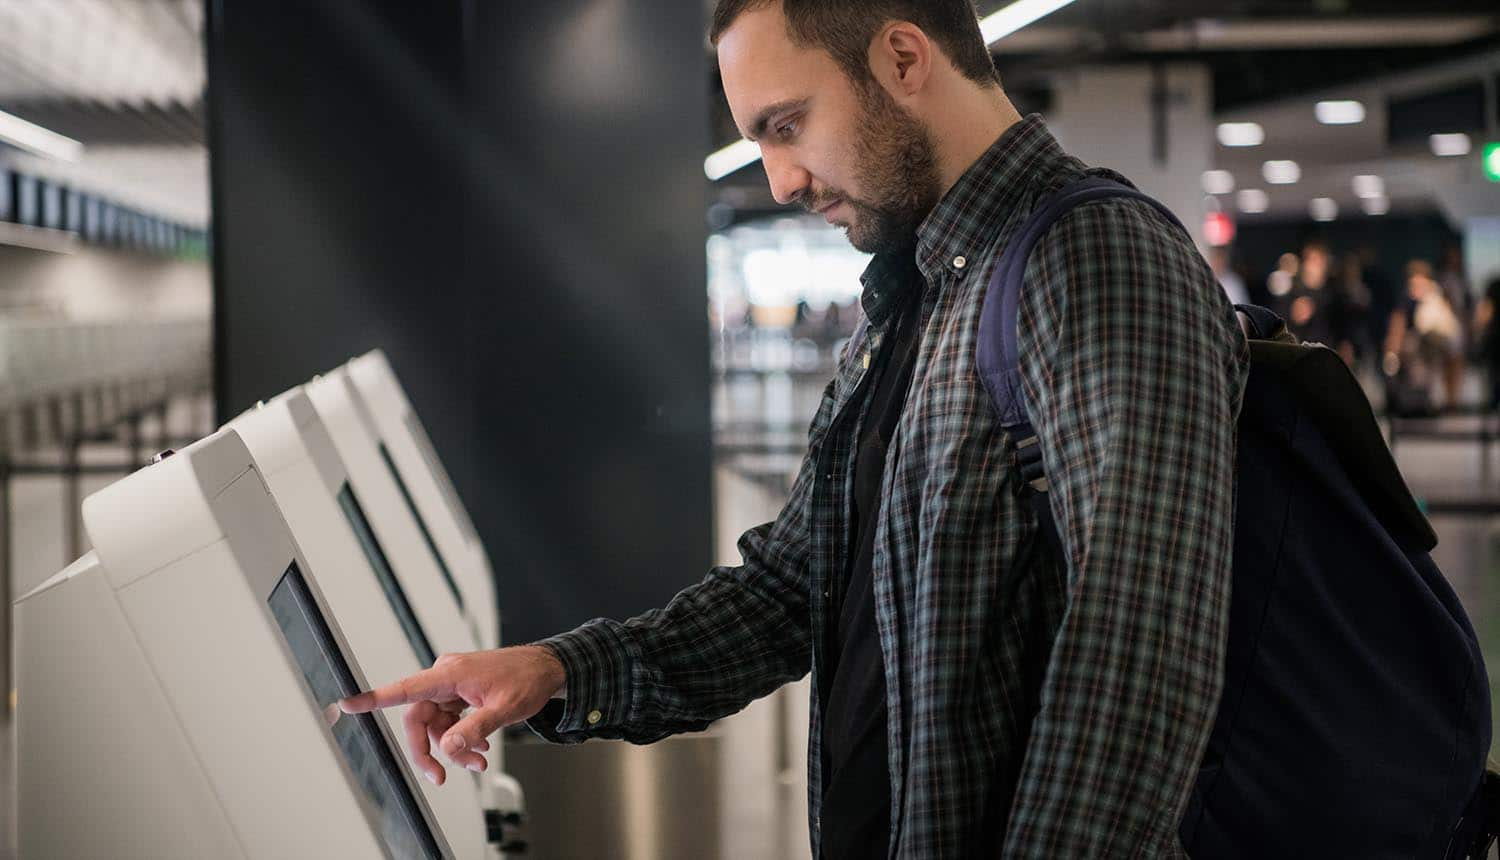 Man using check-in kiosk at airport showing how biometrics will transform airport travel